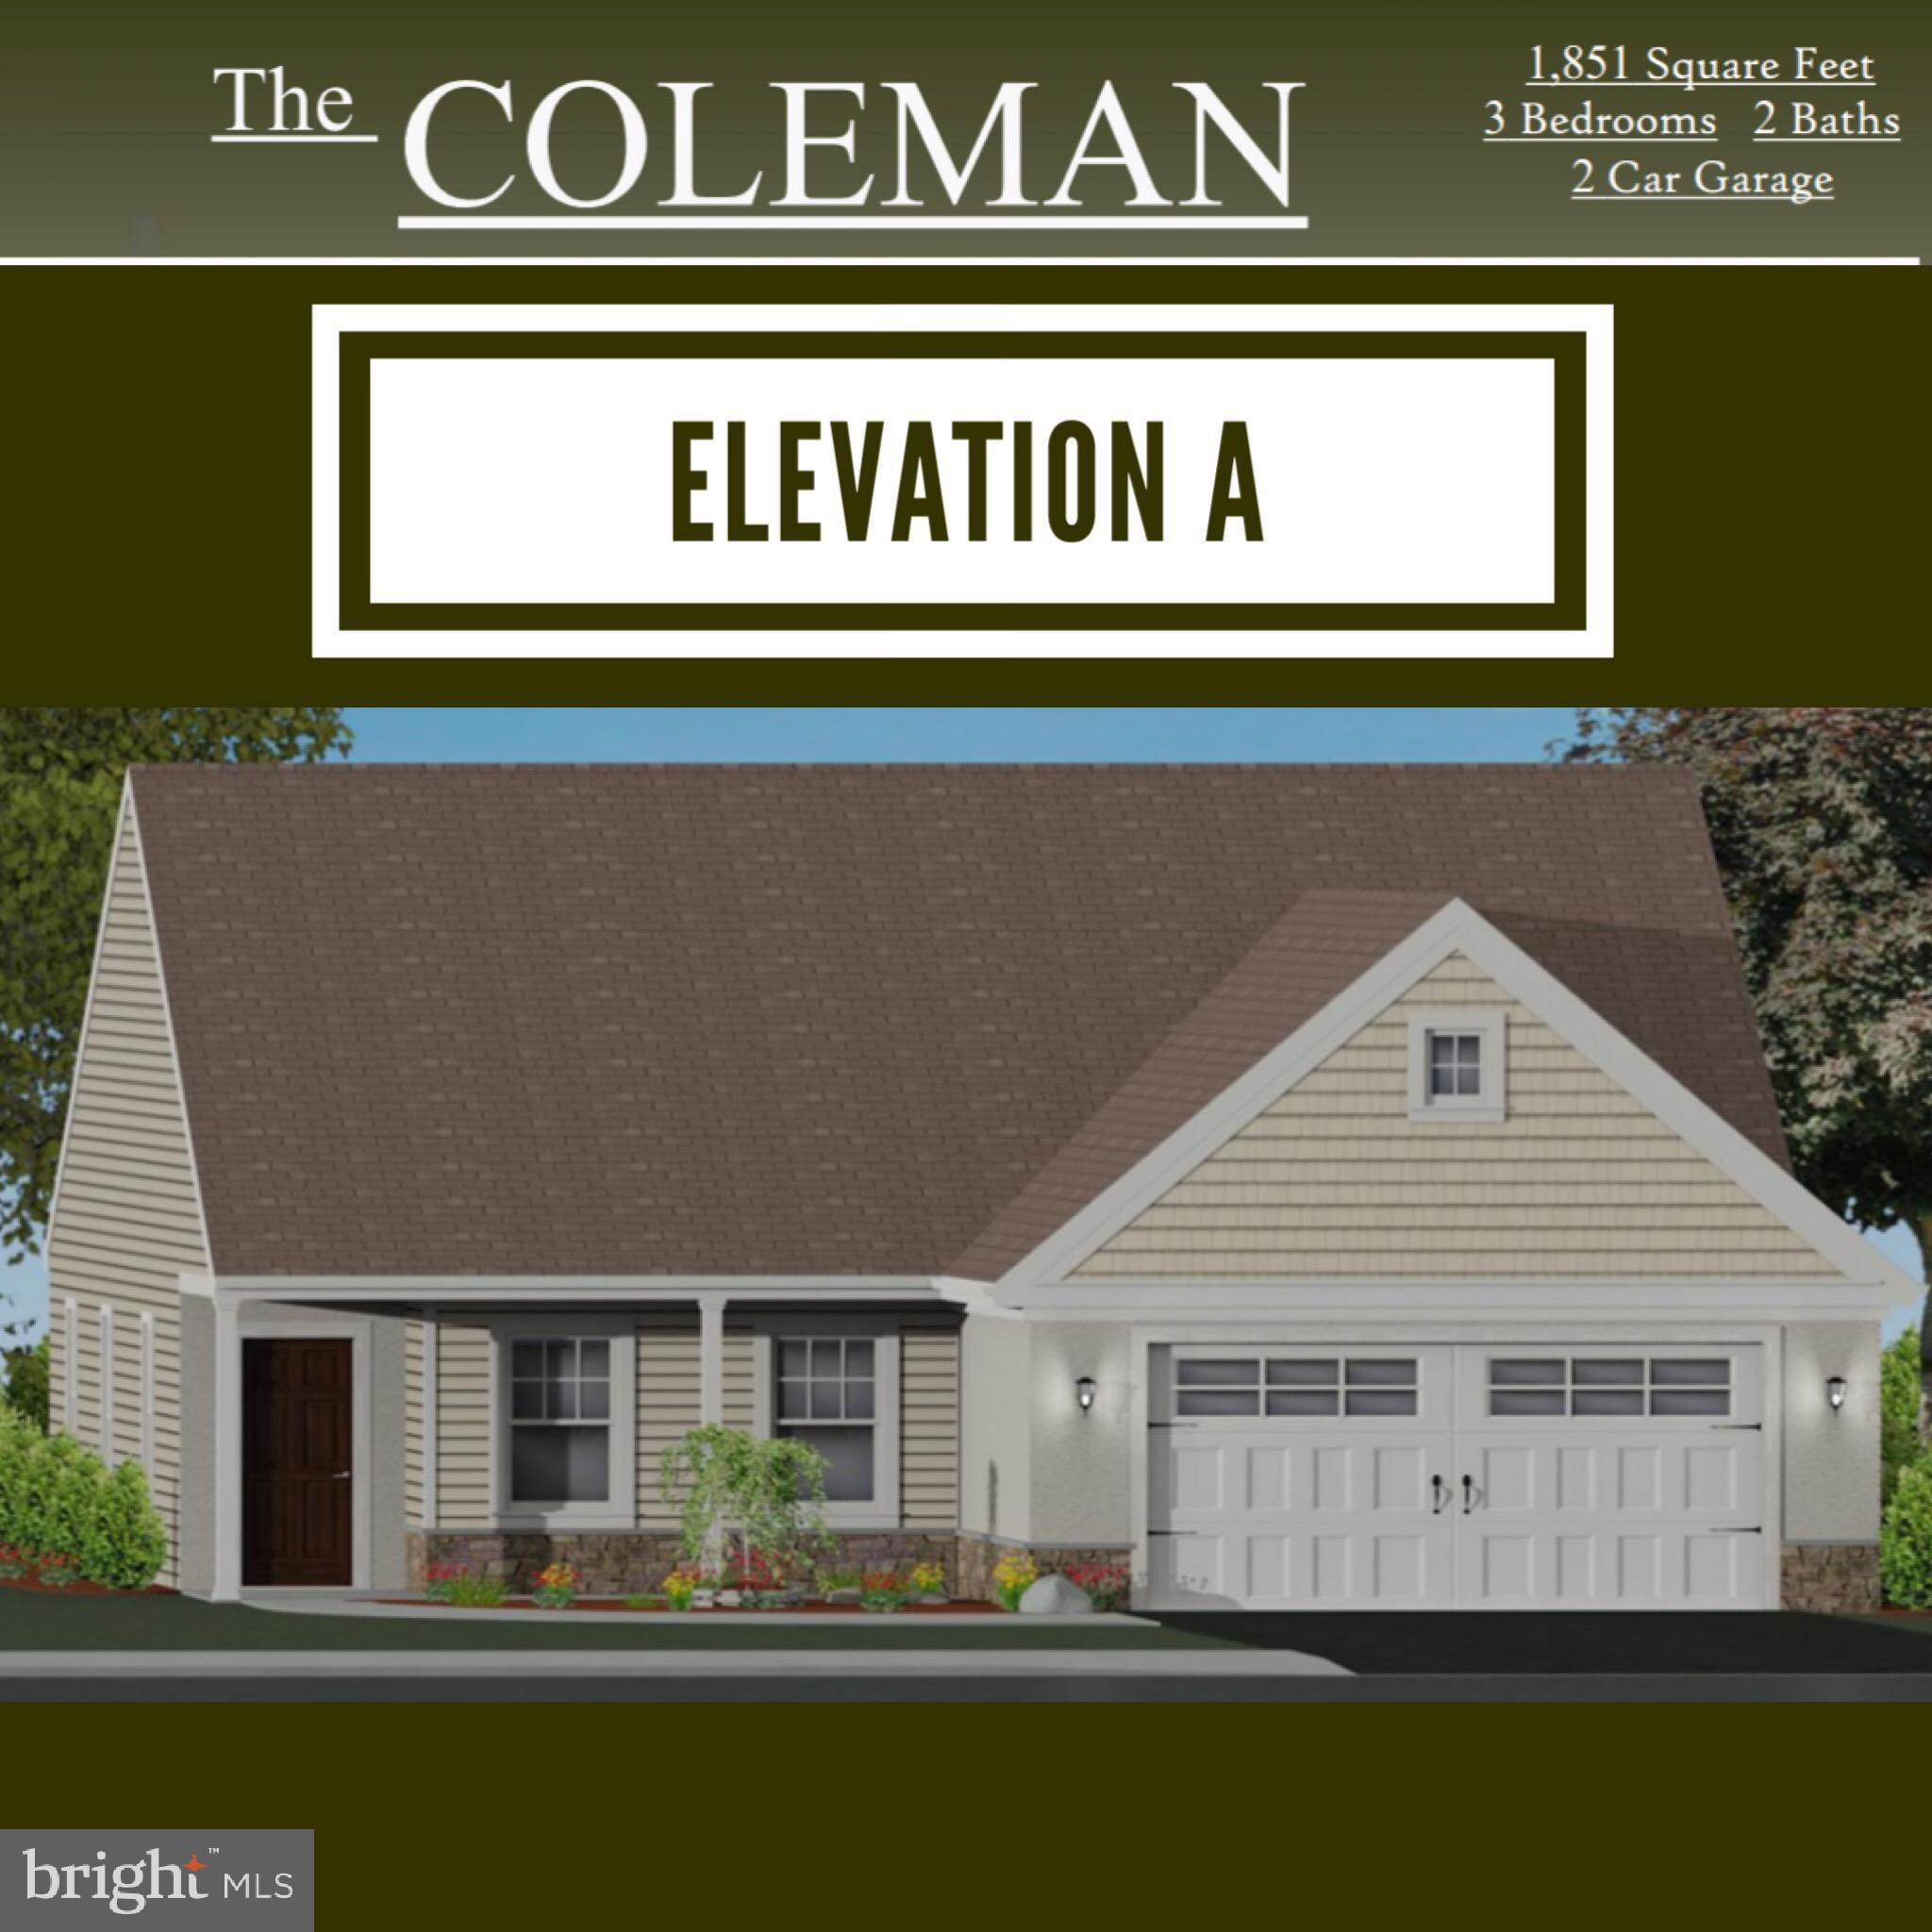 0 THE COLEMAN - ALDEN HOMES AT MOUNTAIN MEADOWS, MYERSTOWN, PA 17067